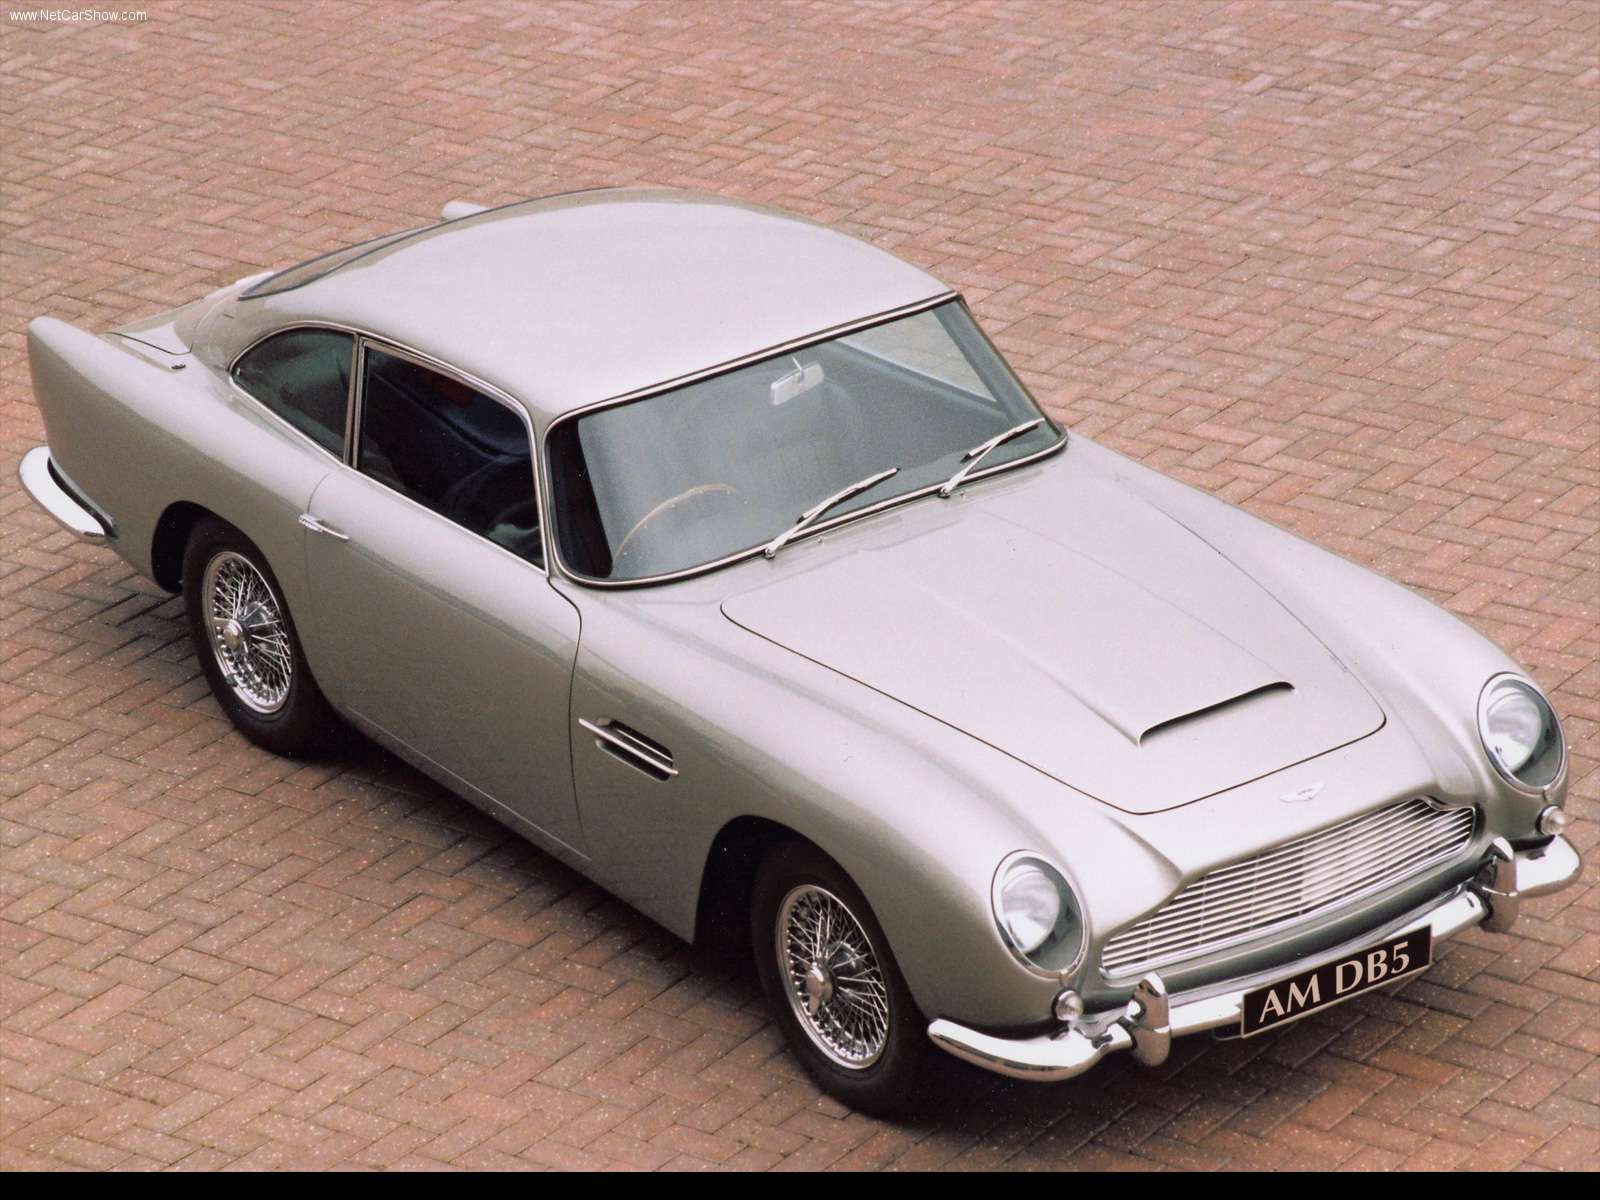 tuning aston martin db5 vantage coupe 1964 online accessories and spare parts for tuning aston. Black Bedroom Furniture Sets. Home Design Ideas